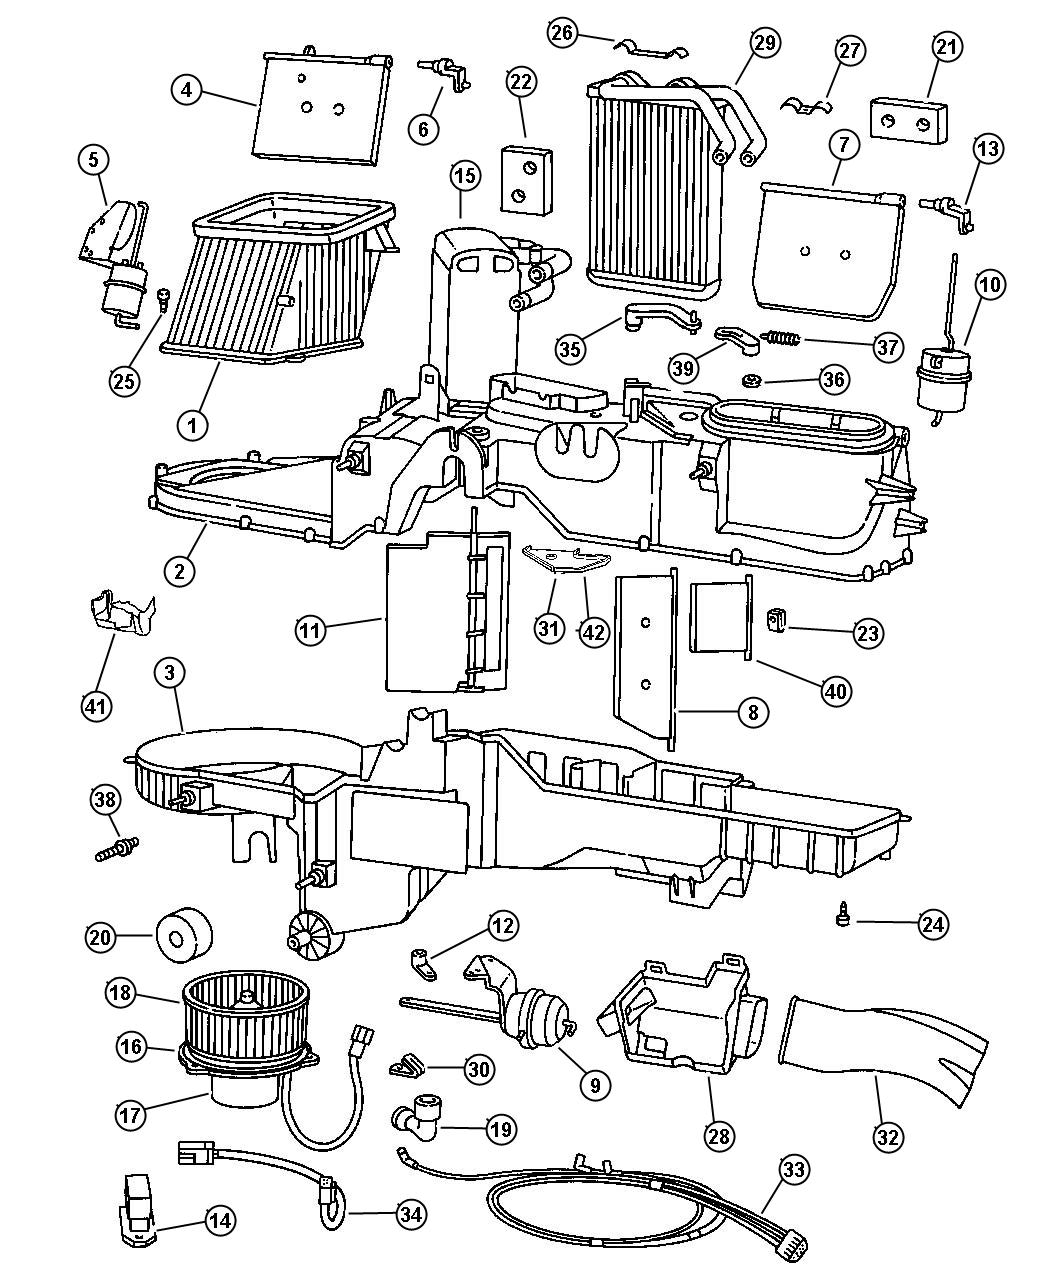 Service Manual Instruction For A Dodge Ram